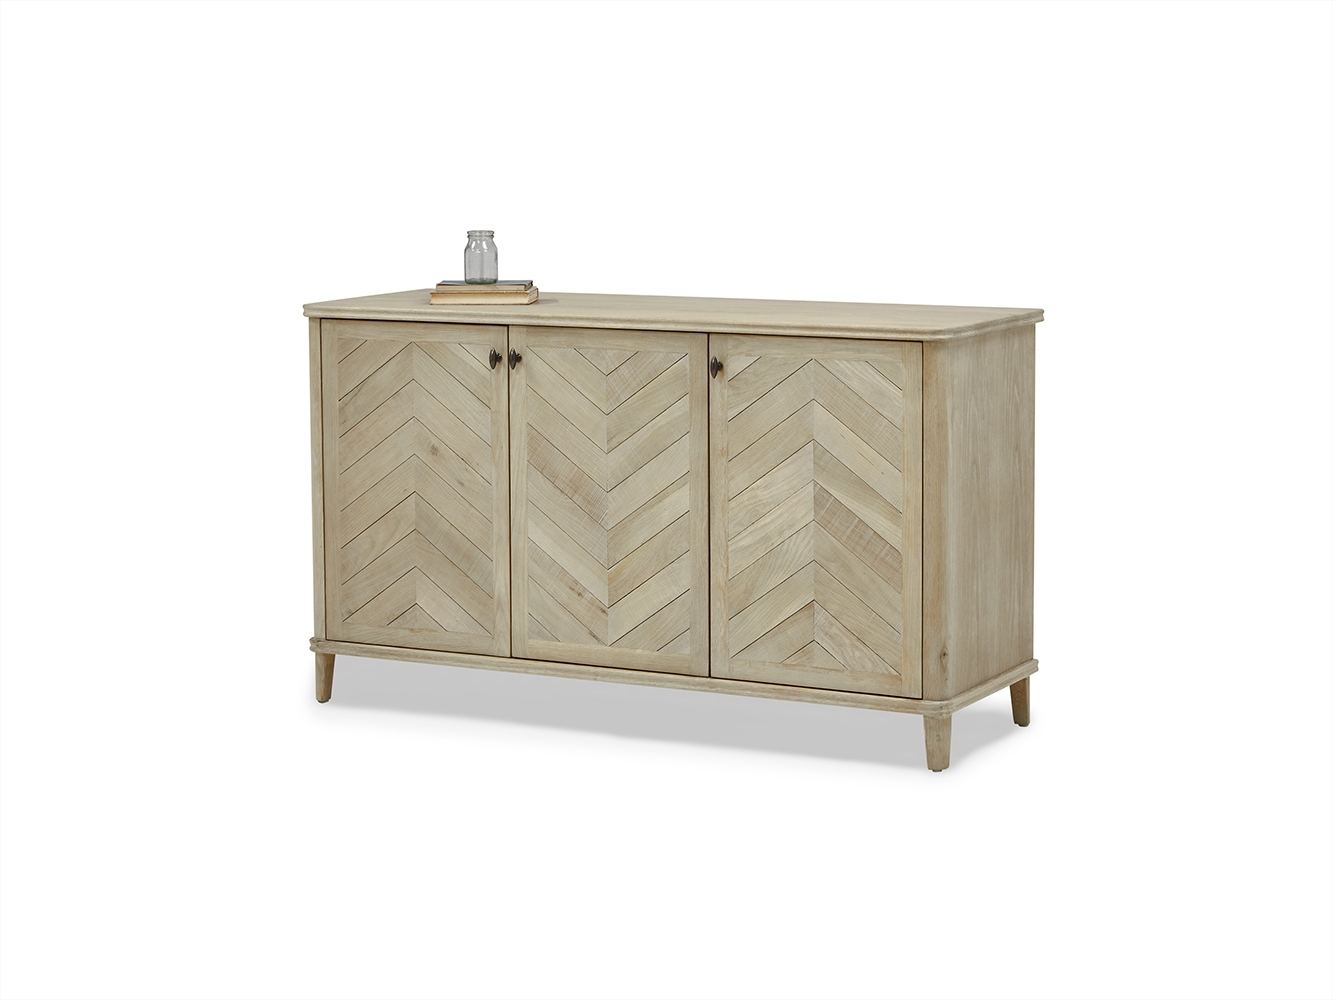 Inspiration about Grand Fandangle Sideboard | Parquet Wood Sideboard | Loaf Within Latest Parquet Sideboards (#1 of 20)